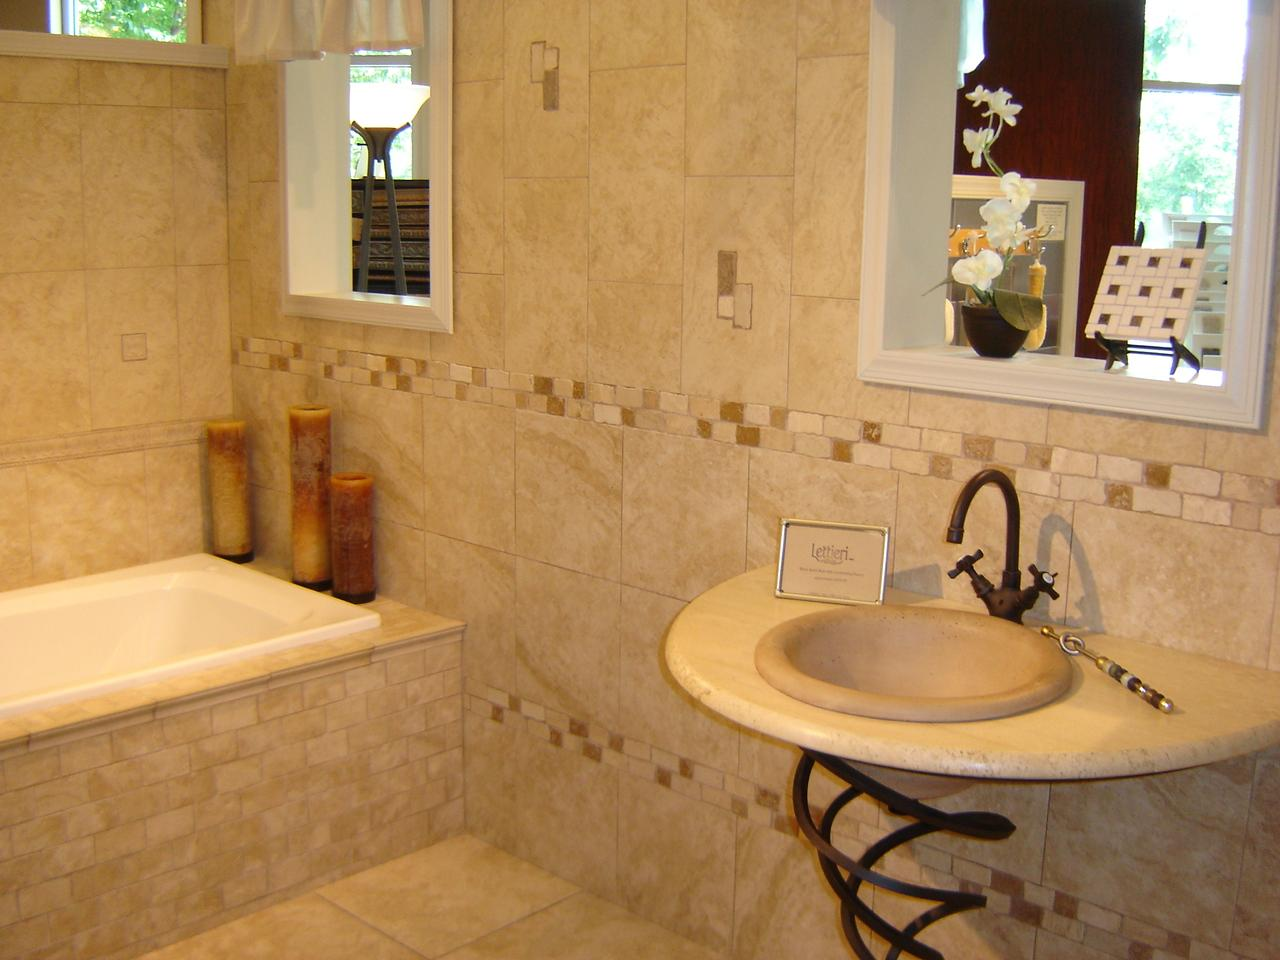 See also: Bathroom Tile Design Ideas